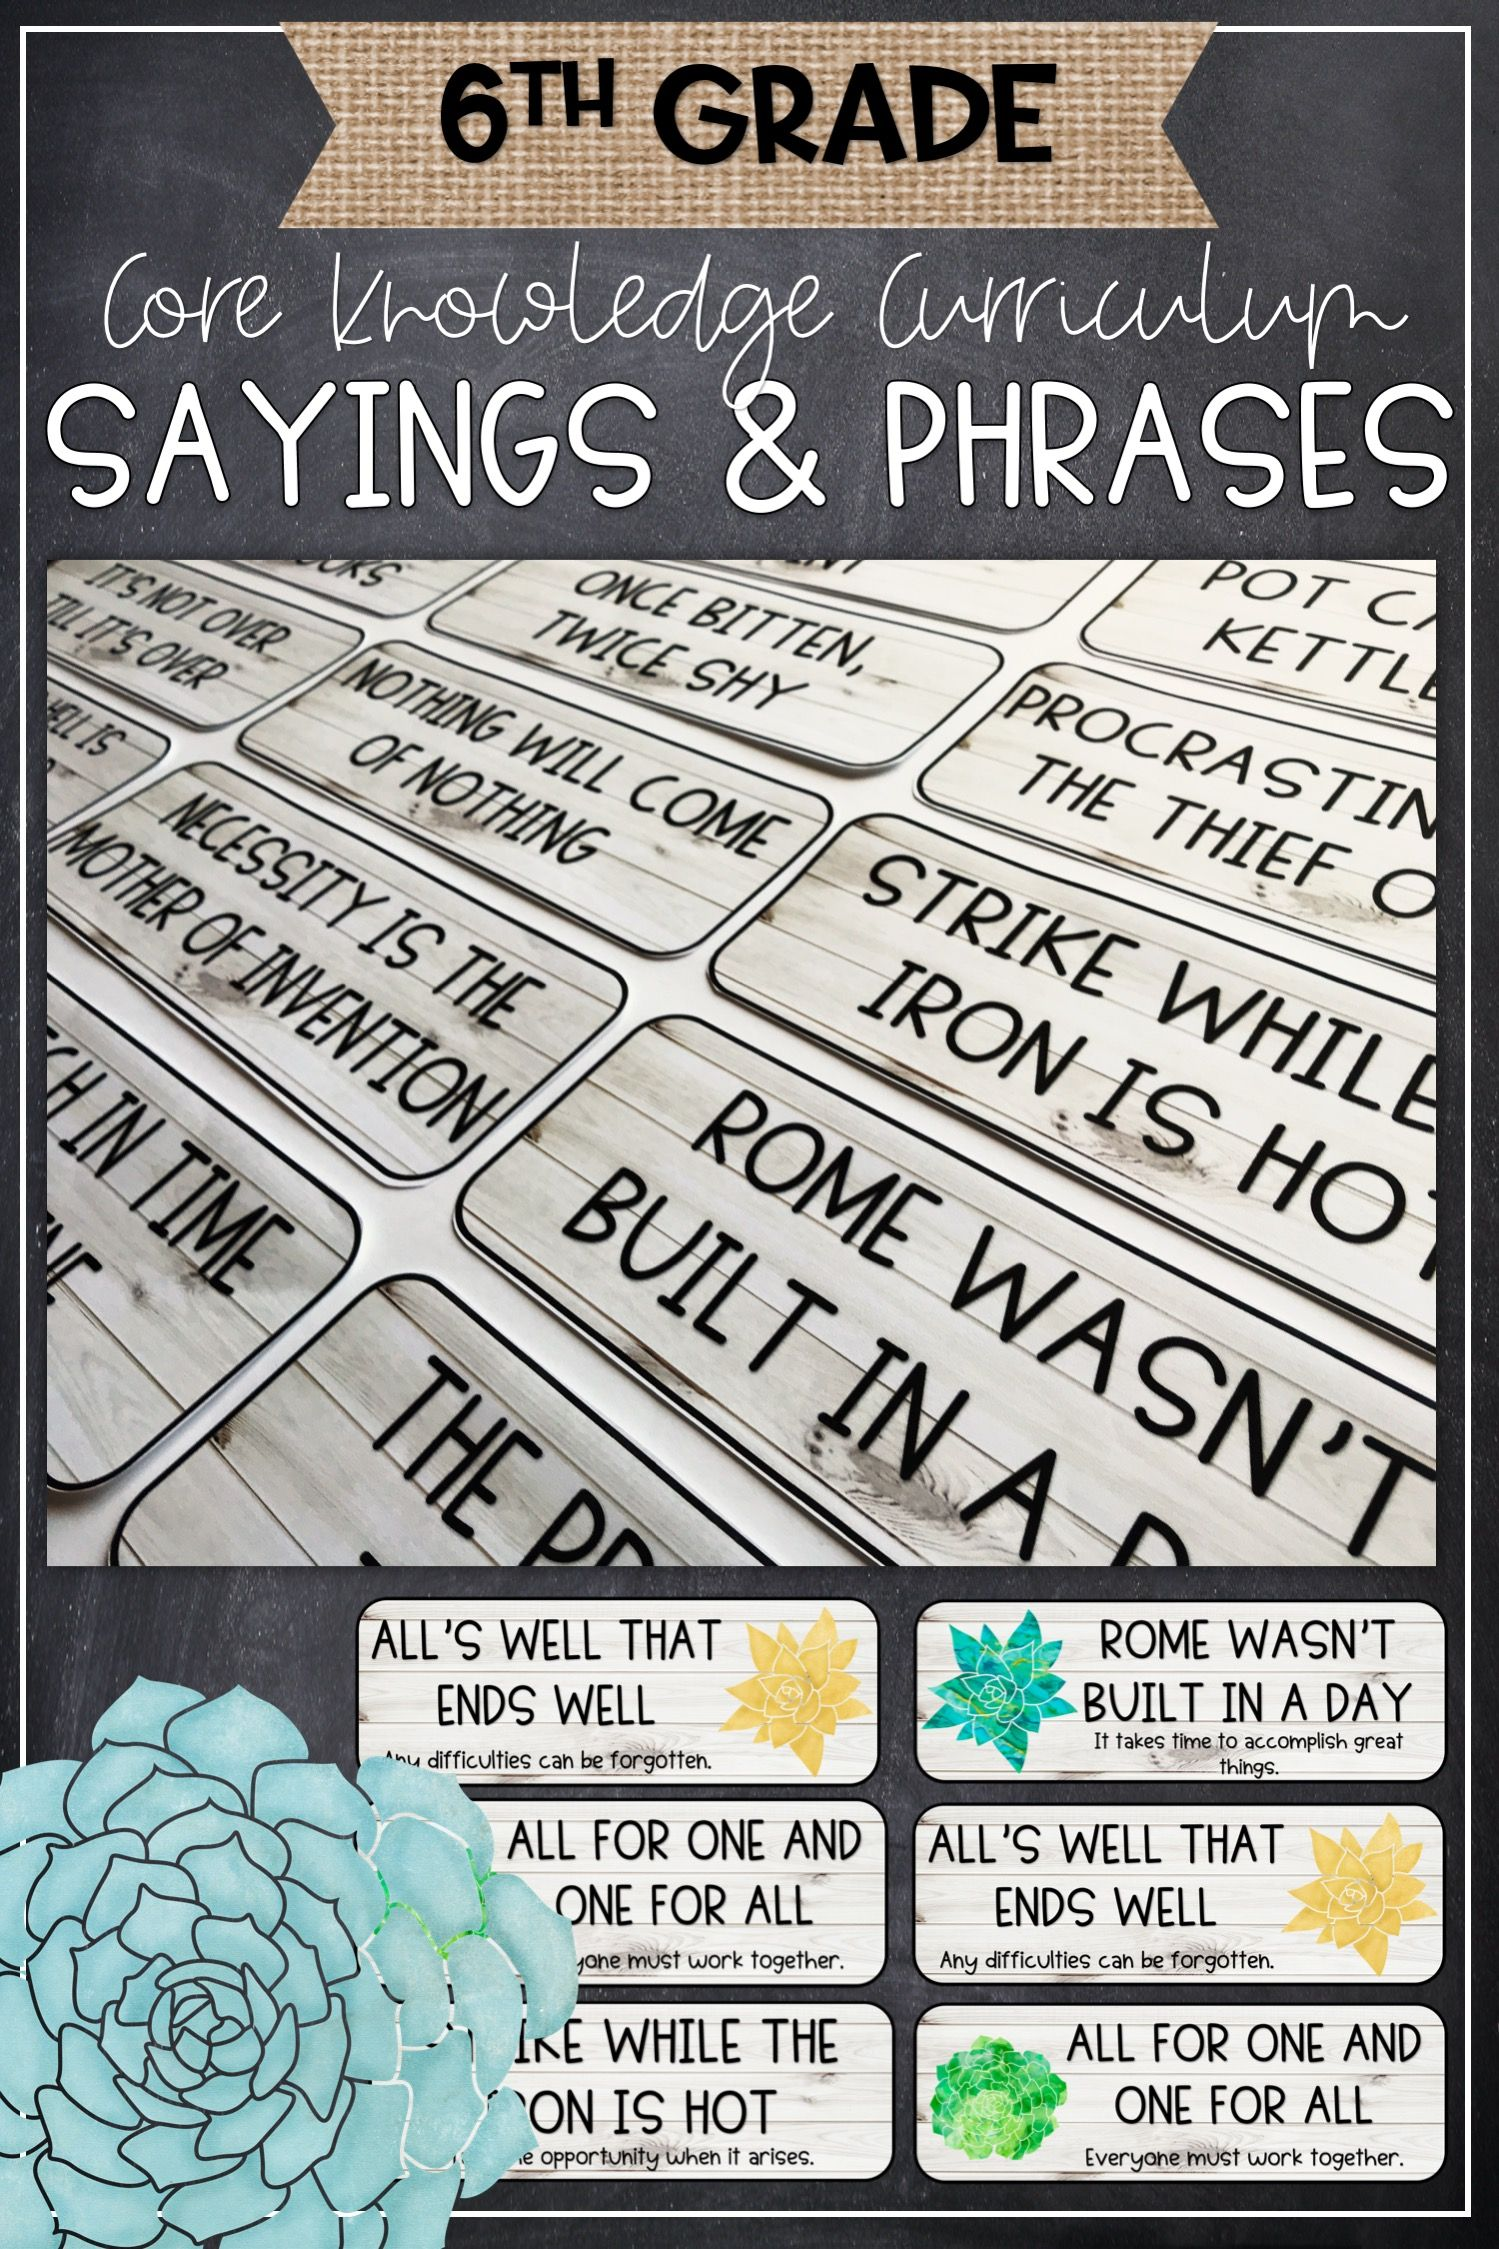 Idioms Adages Proverbs Core Knowledge 6th Grade Idioms Sayings And Phrases 6th Grade Reading [ 2249 x 1499 Pixel ]